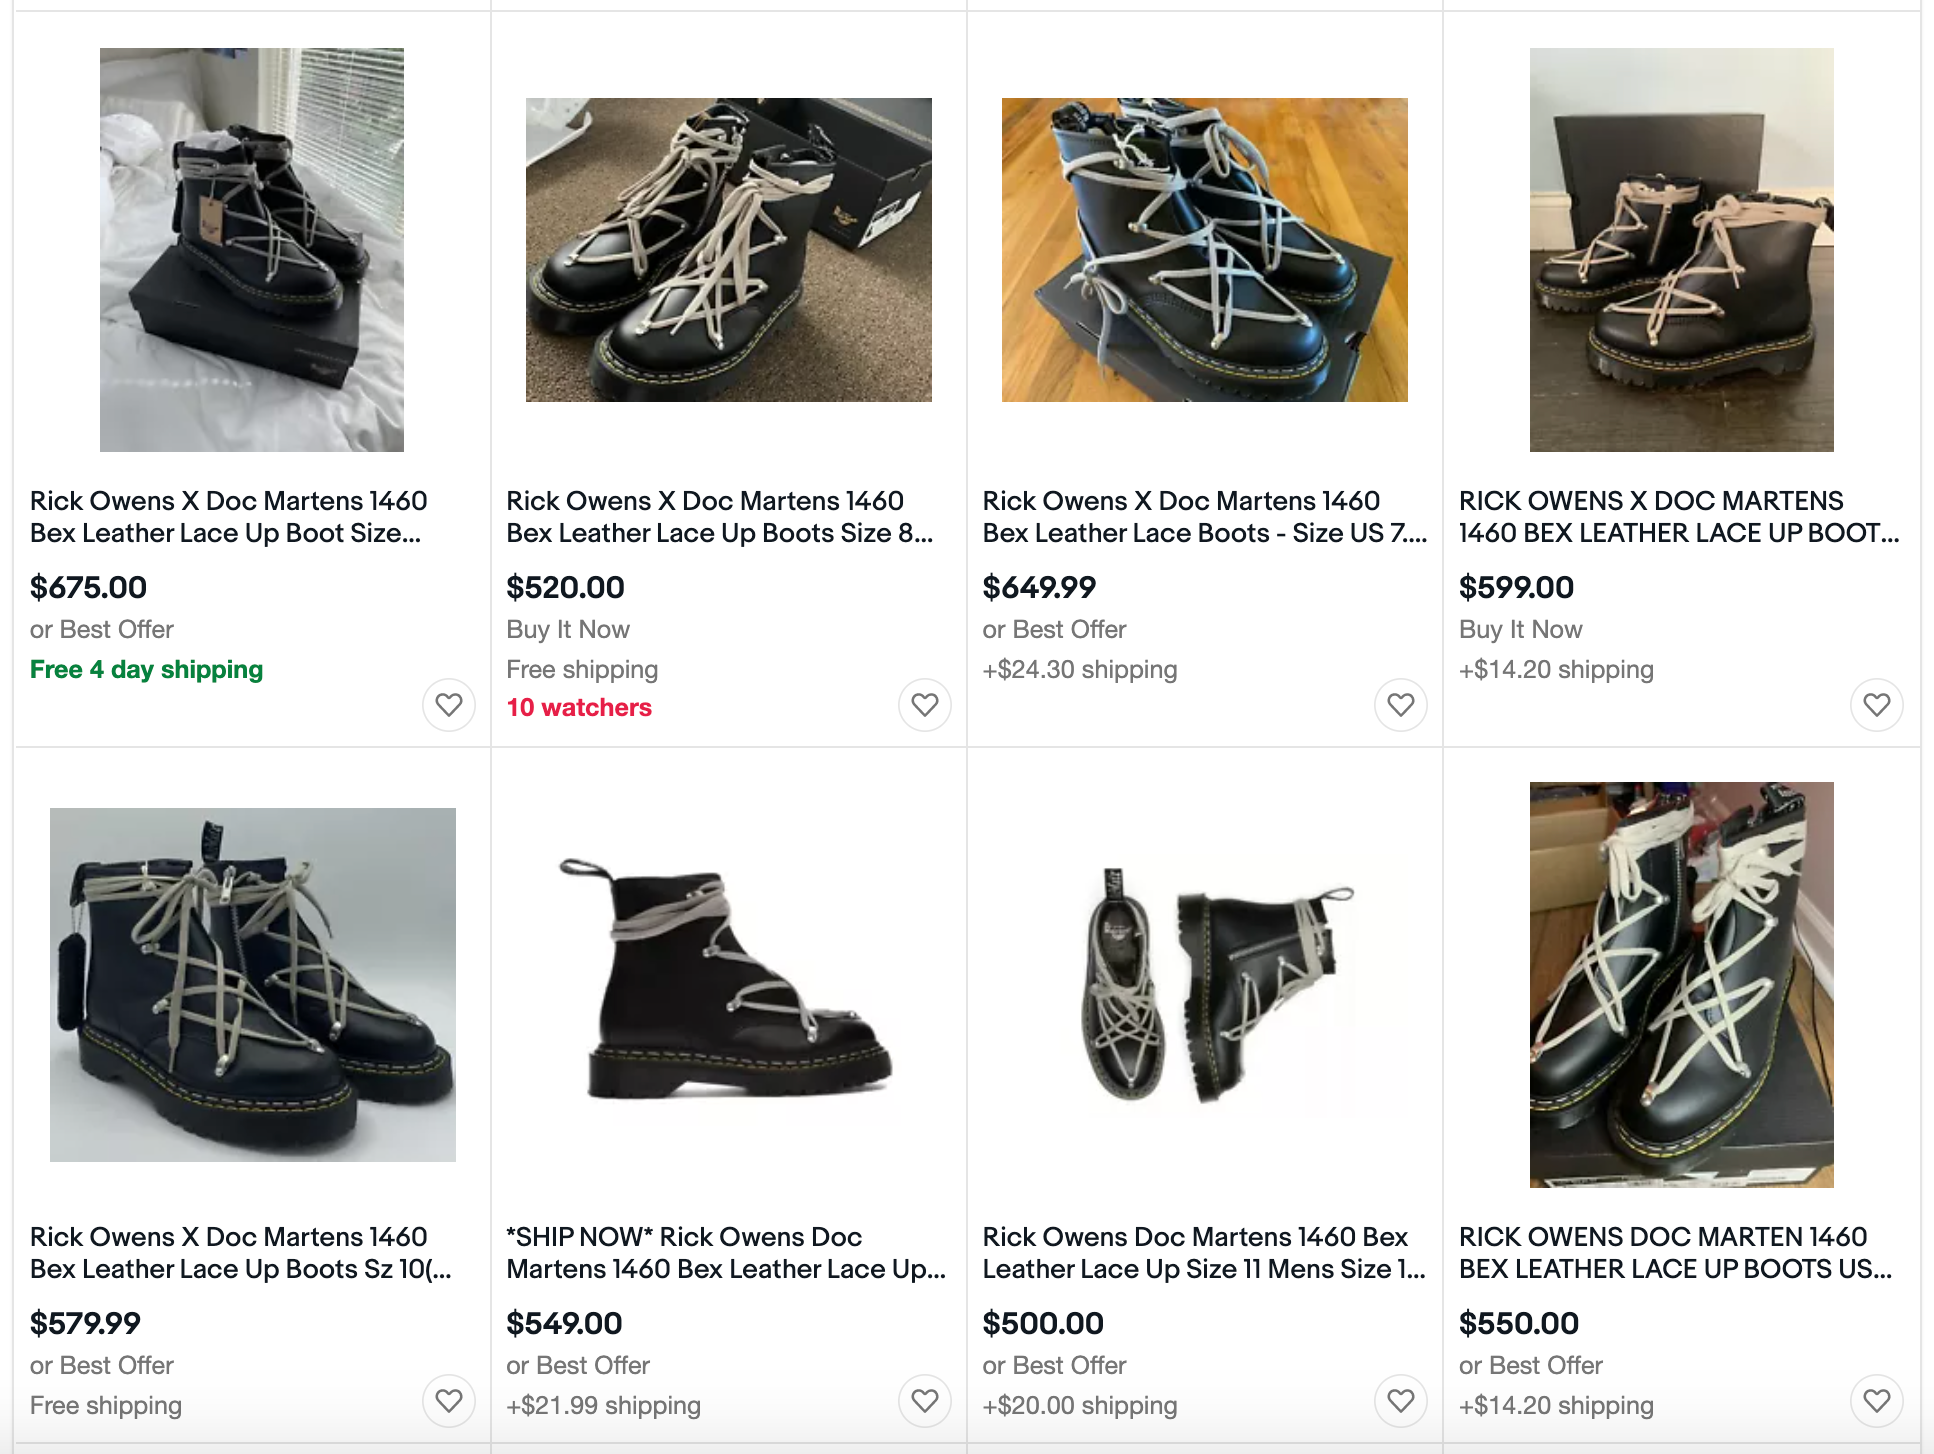 value based pricing ebay example